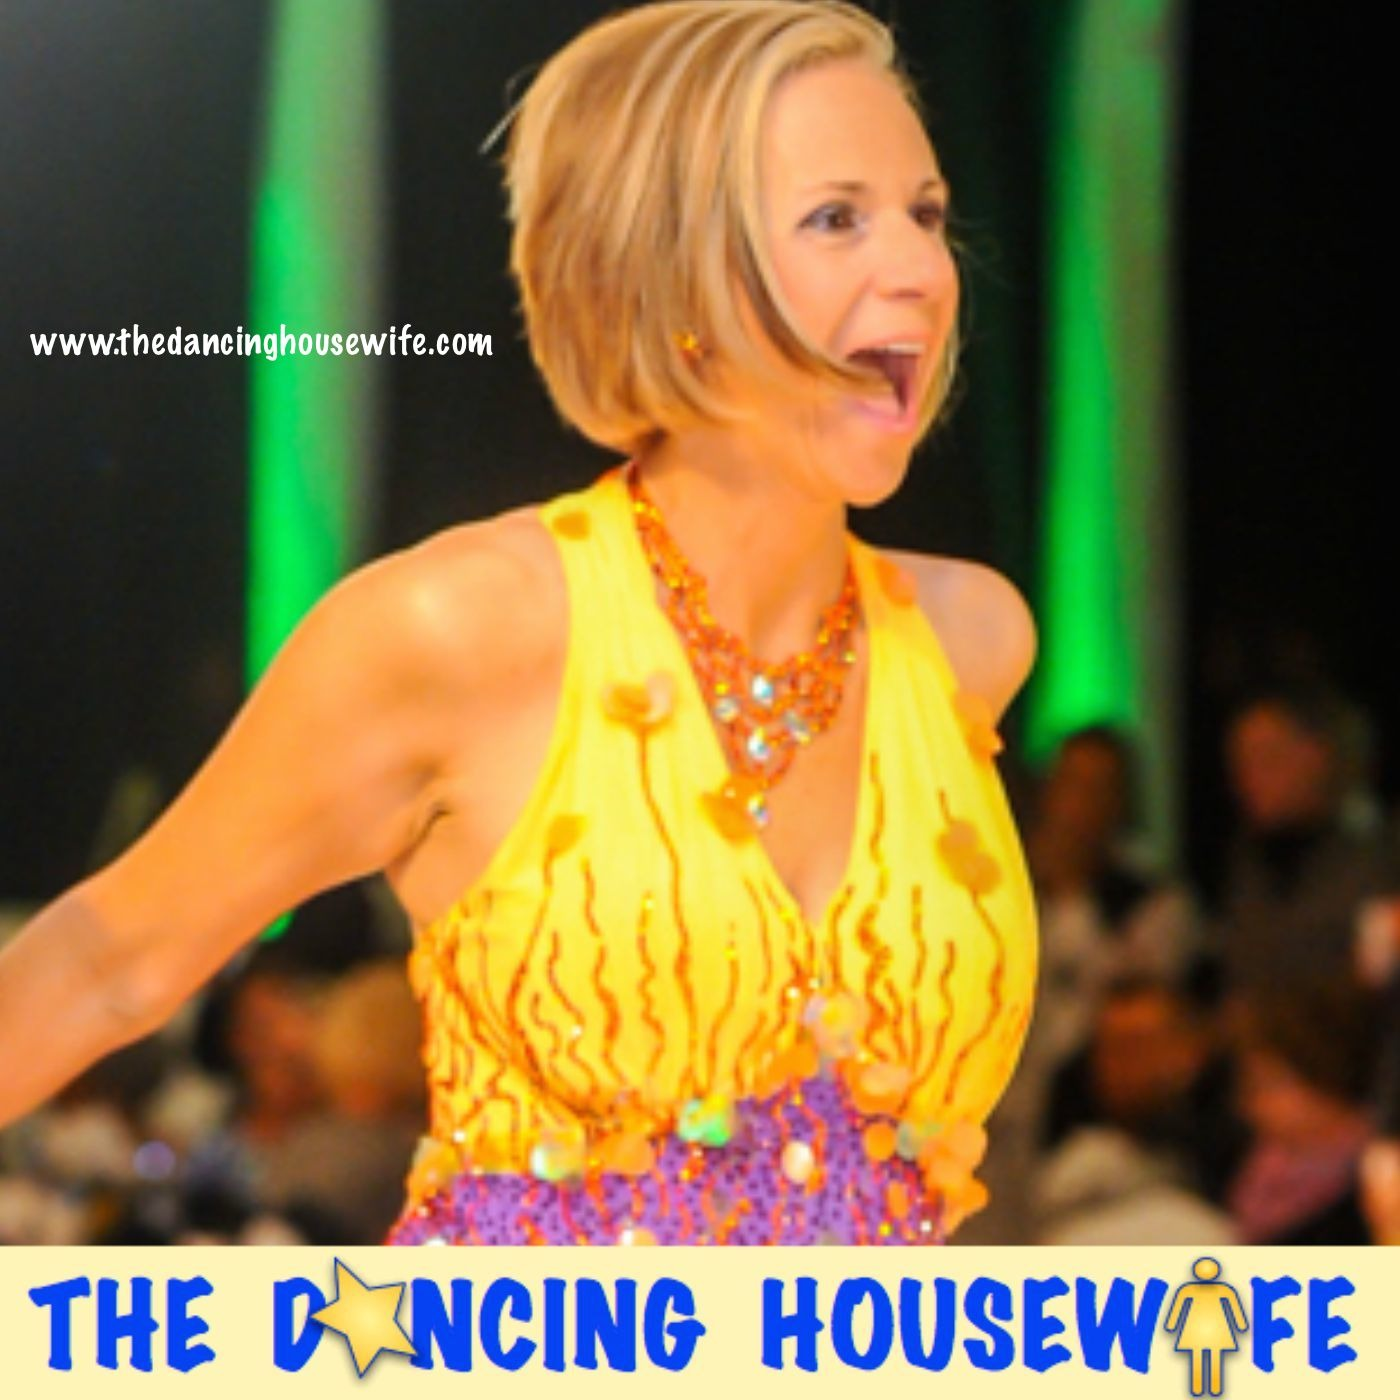 The Dancing Housewife Podcast